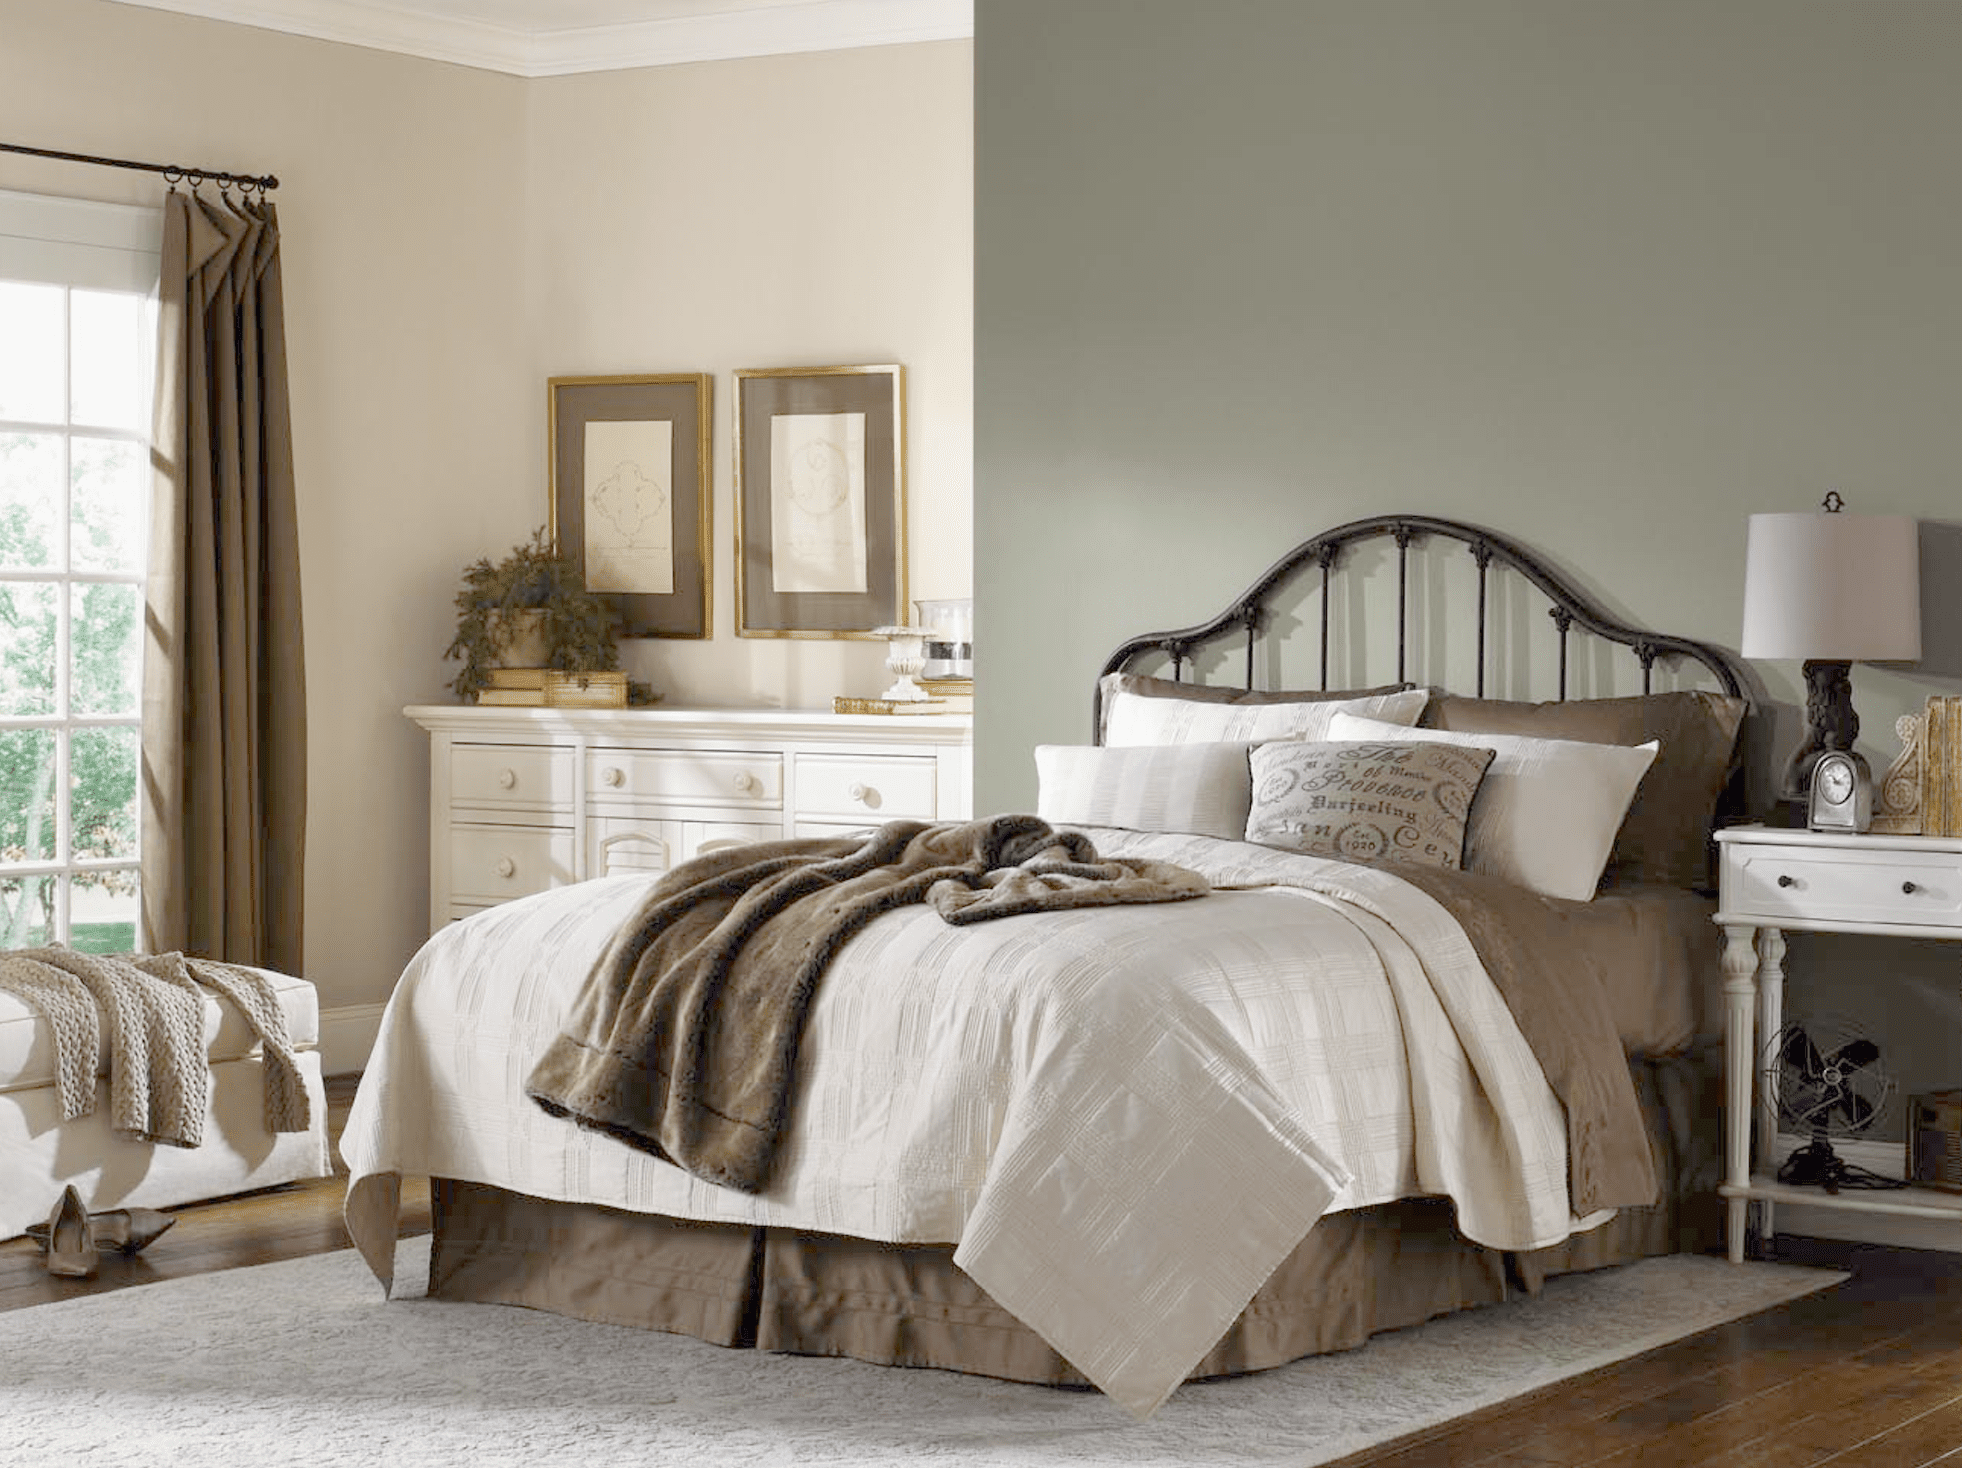 Paint Colors For Small Bedrooms: 8 Relaxing Sherwin-Williams Paint Colors For Bedrooms